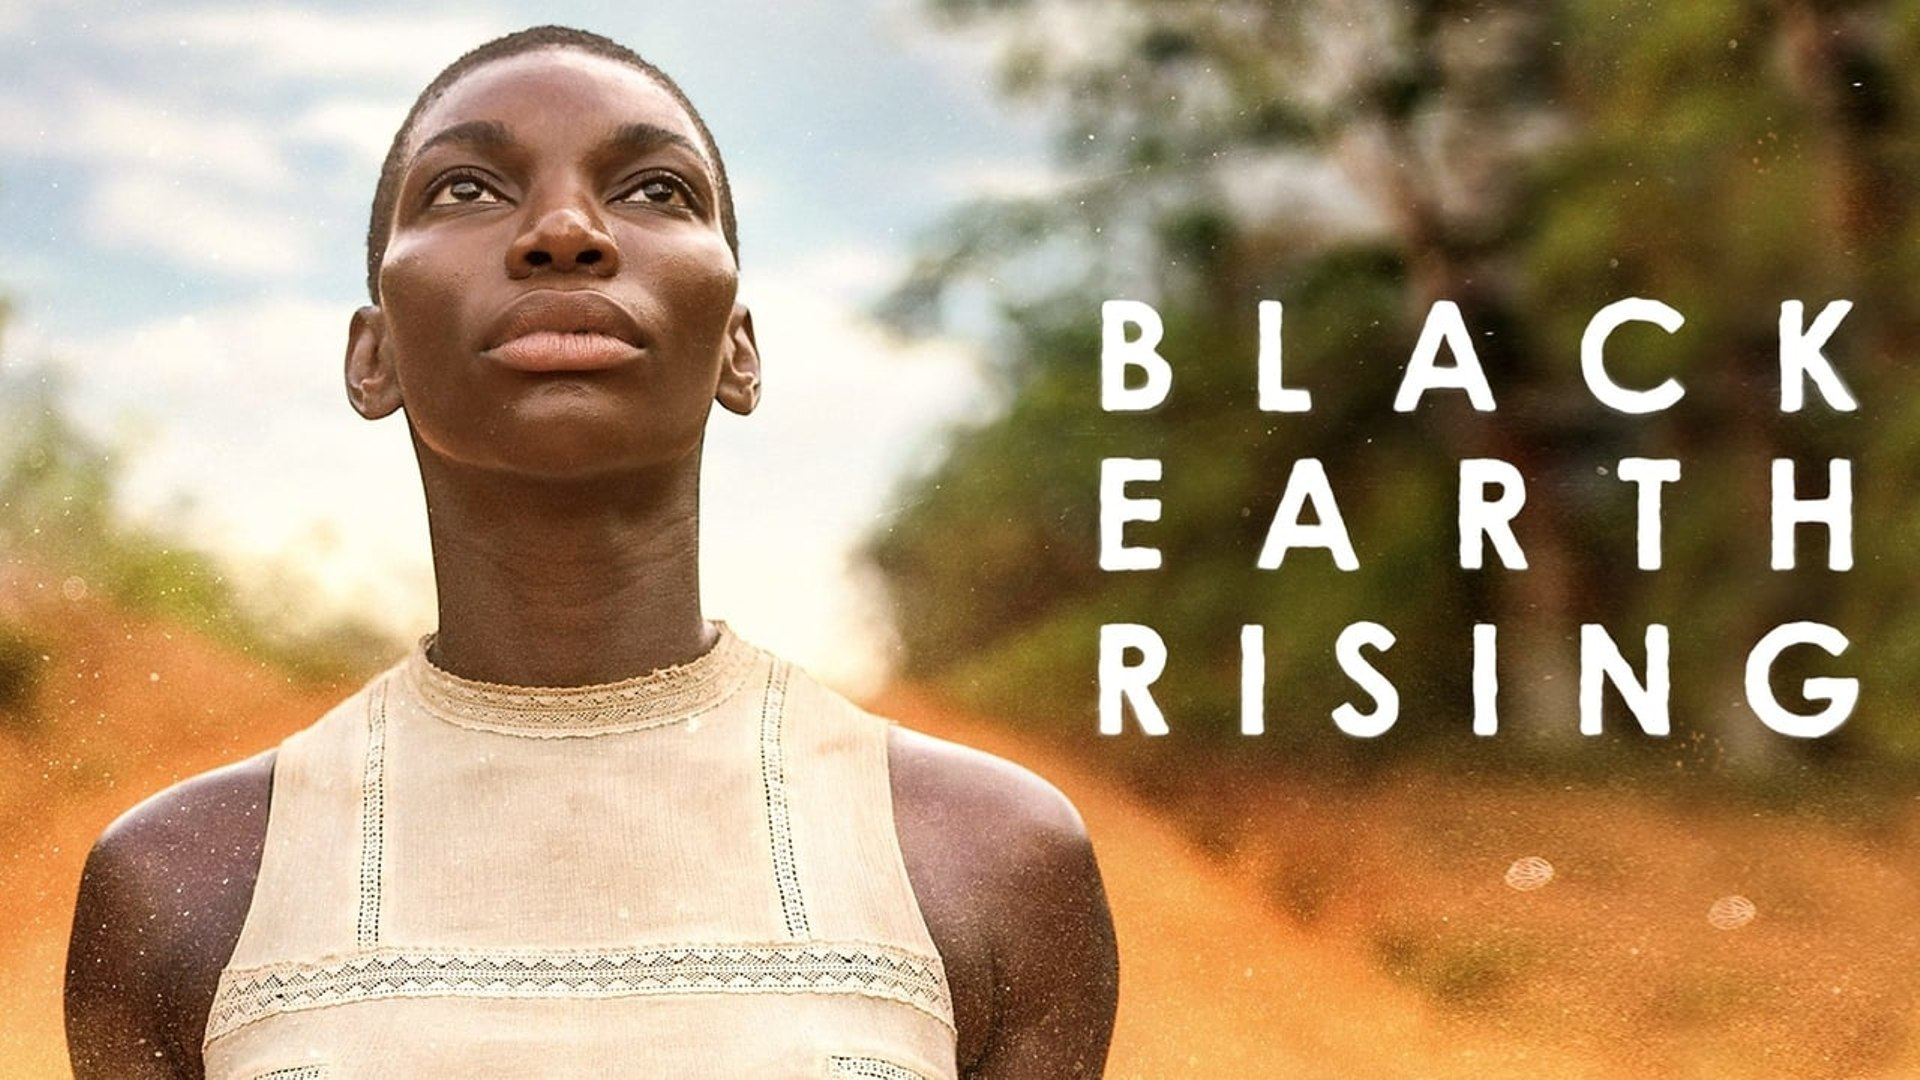 British-Ghanaian actress Michaela Coel stars in this series surrounding the anniversary of the Rwandan genocide.